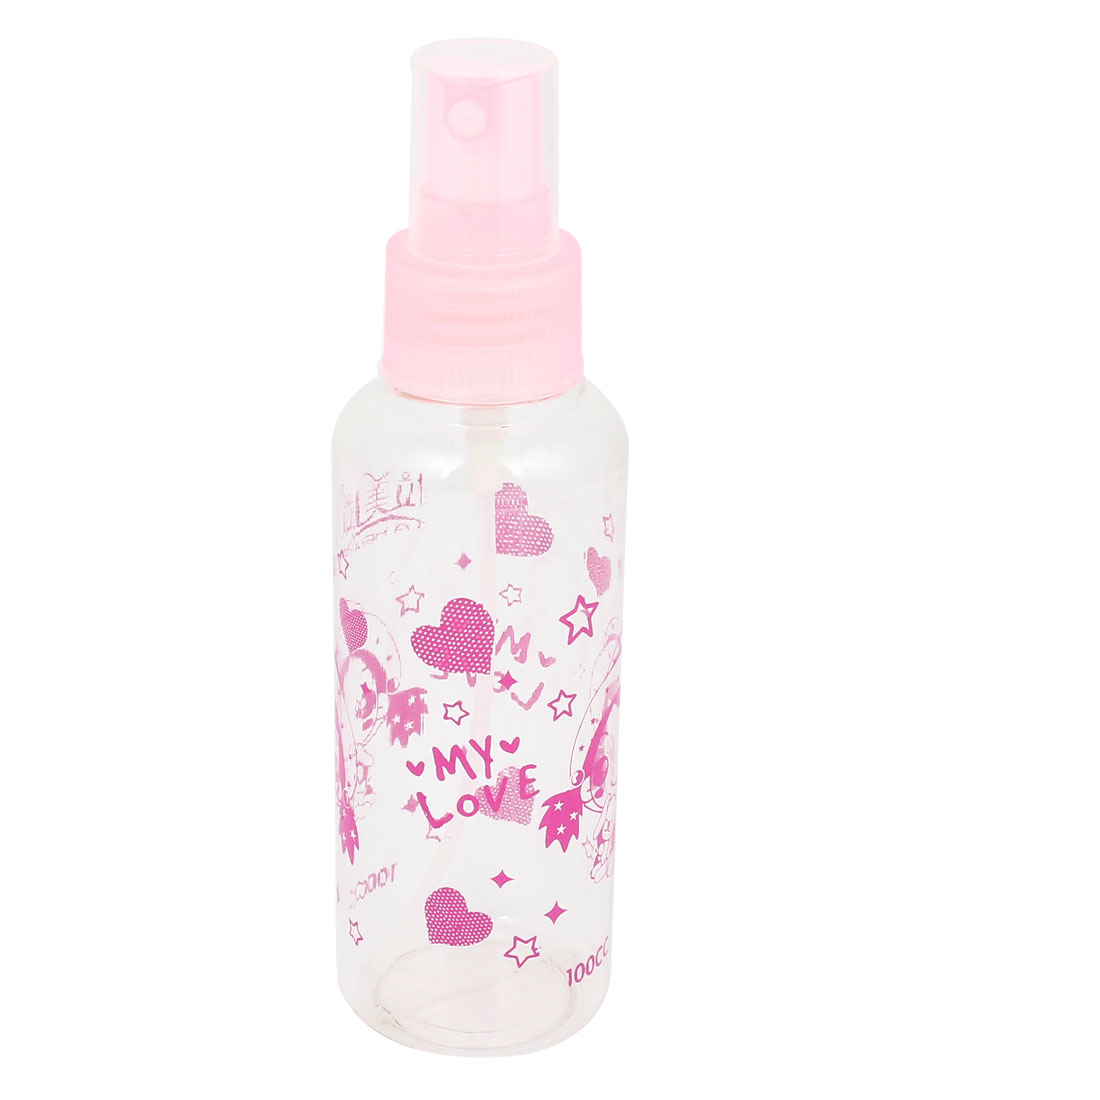 Travel Fuchsia Heart Pattern Spray Bottle Holder Container Pink Clear 100ml